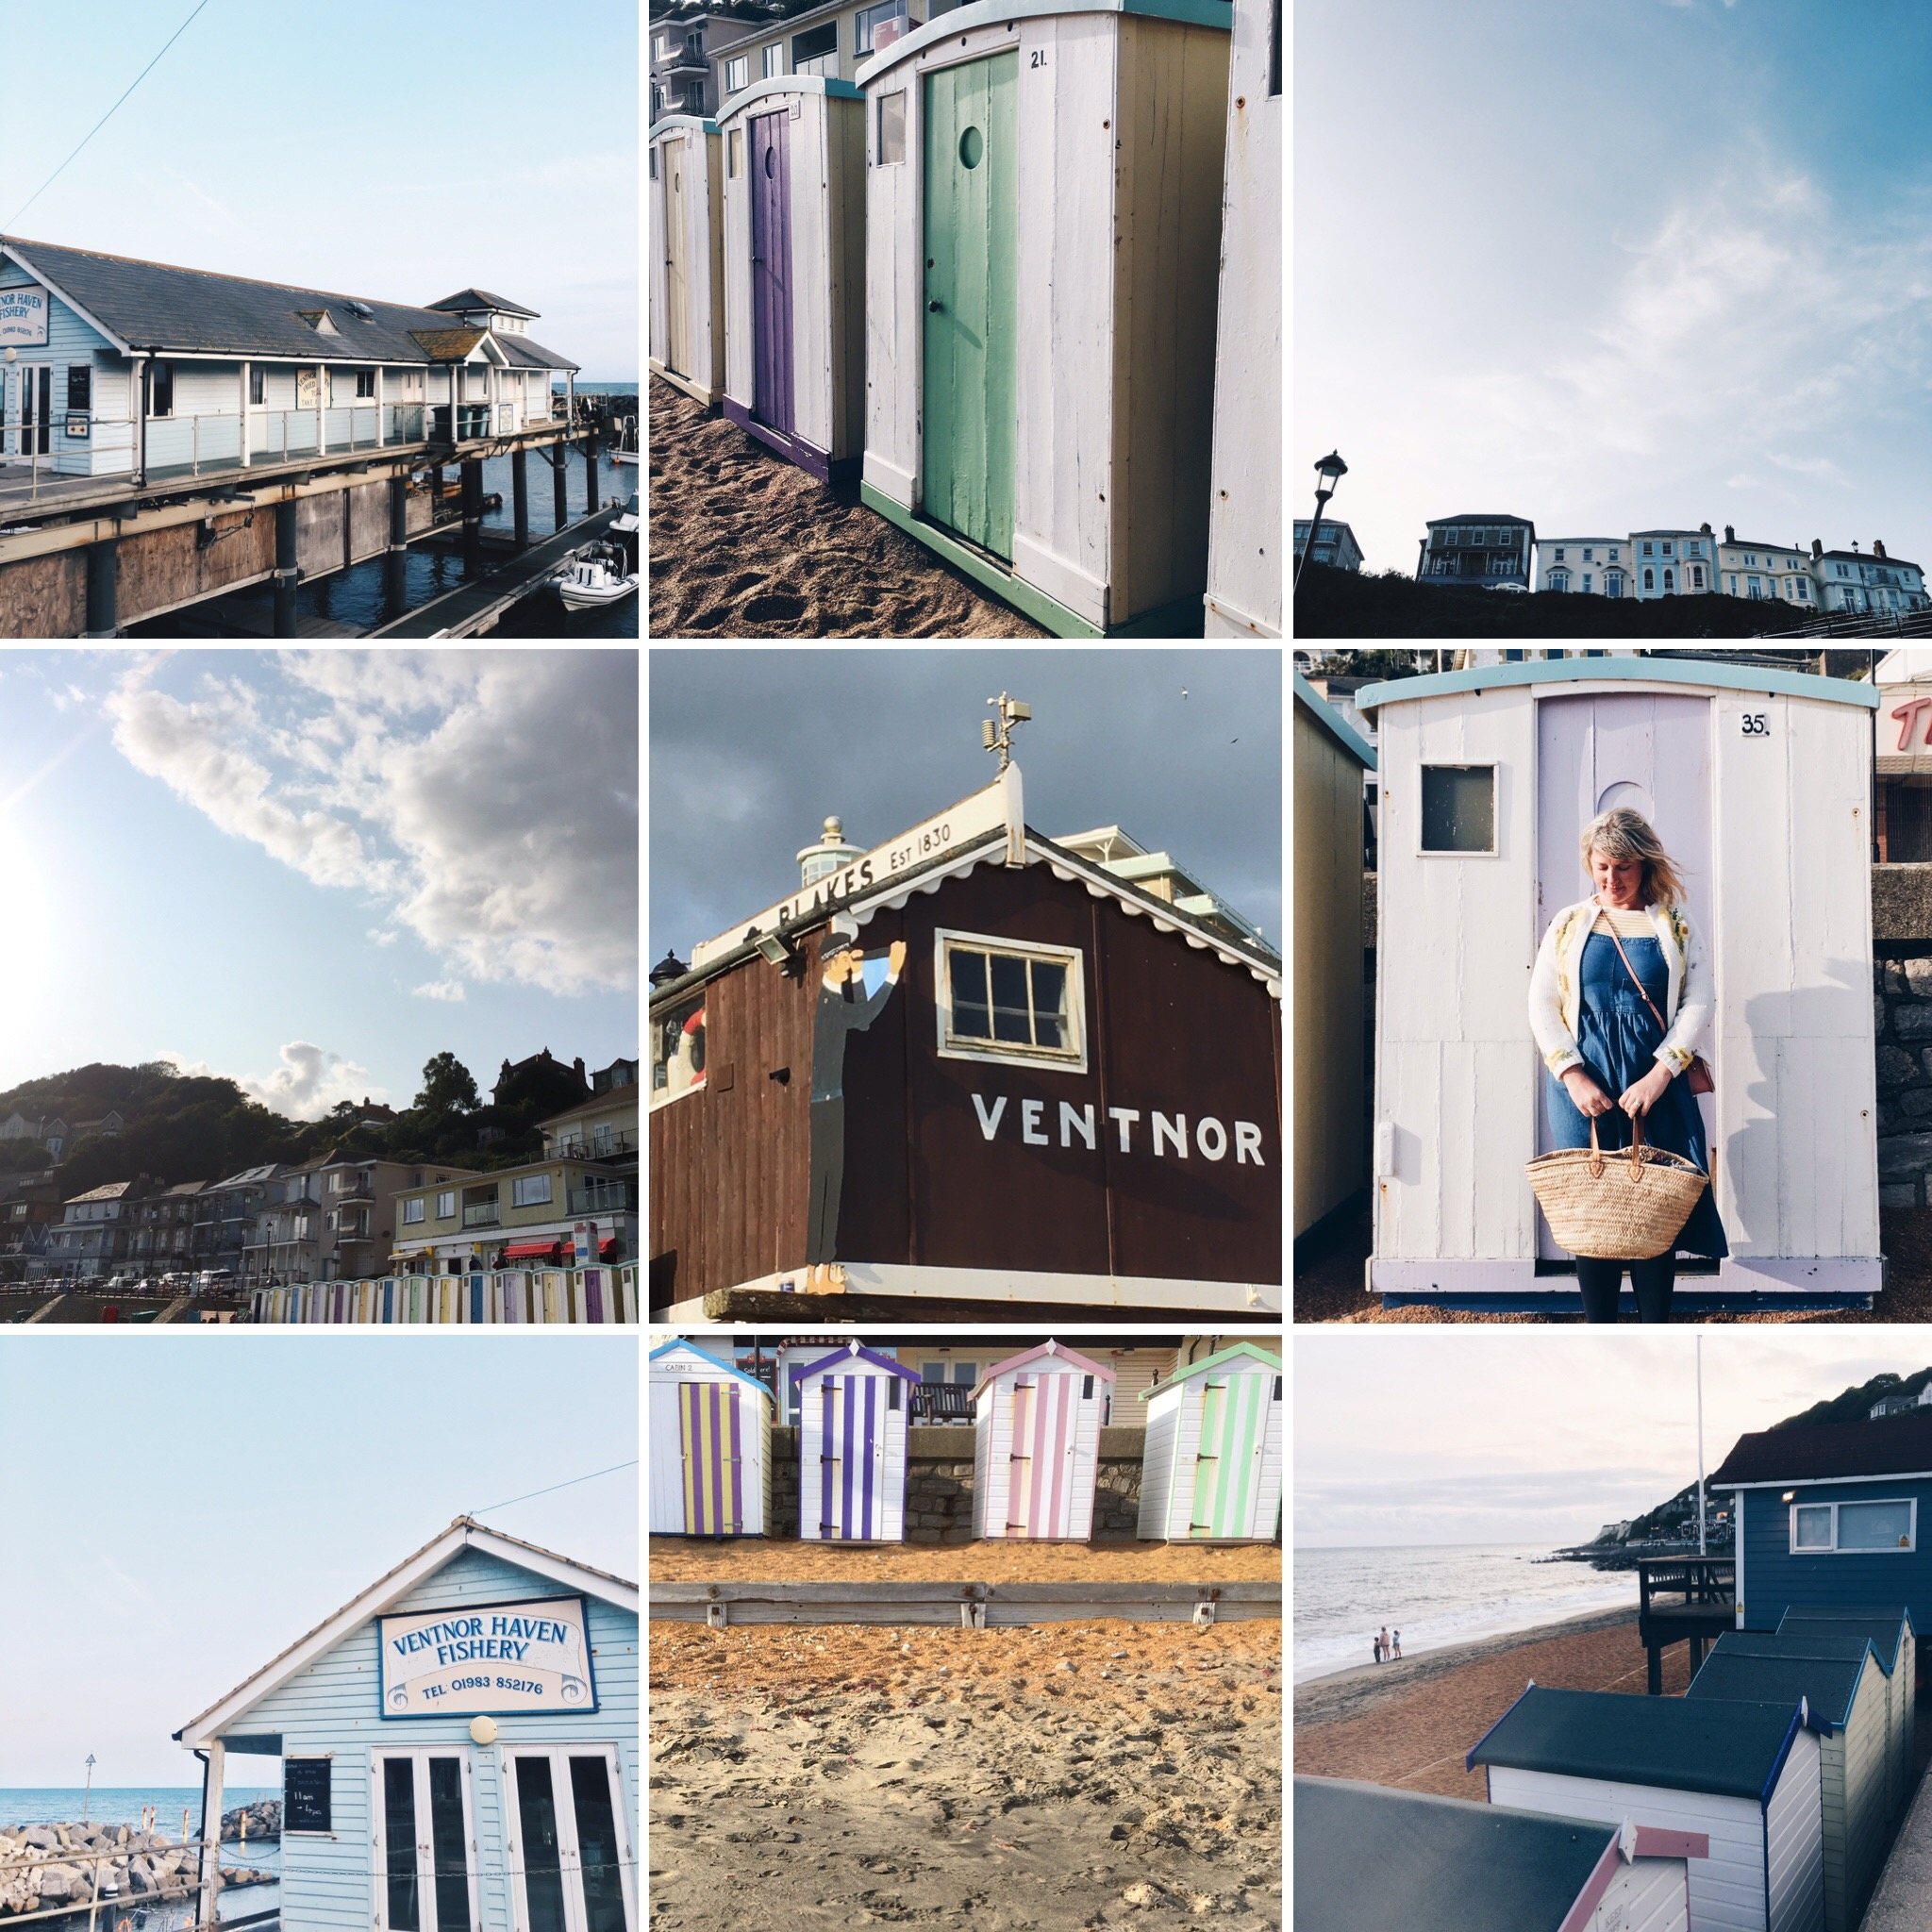 The vintage beach huts on Ventnor beach are painted in pastel colours.  The fishery serves freshly caught fish in the daytime.  The sand is a gorgeous golden colour.